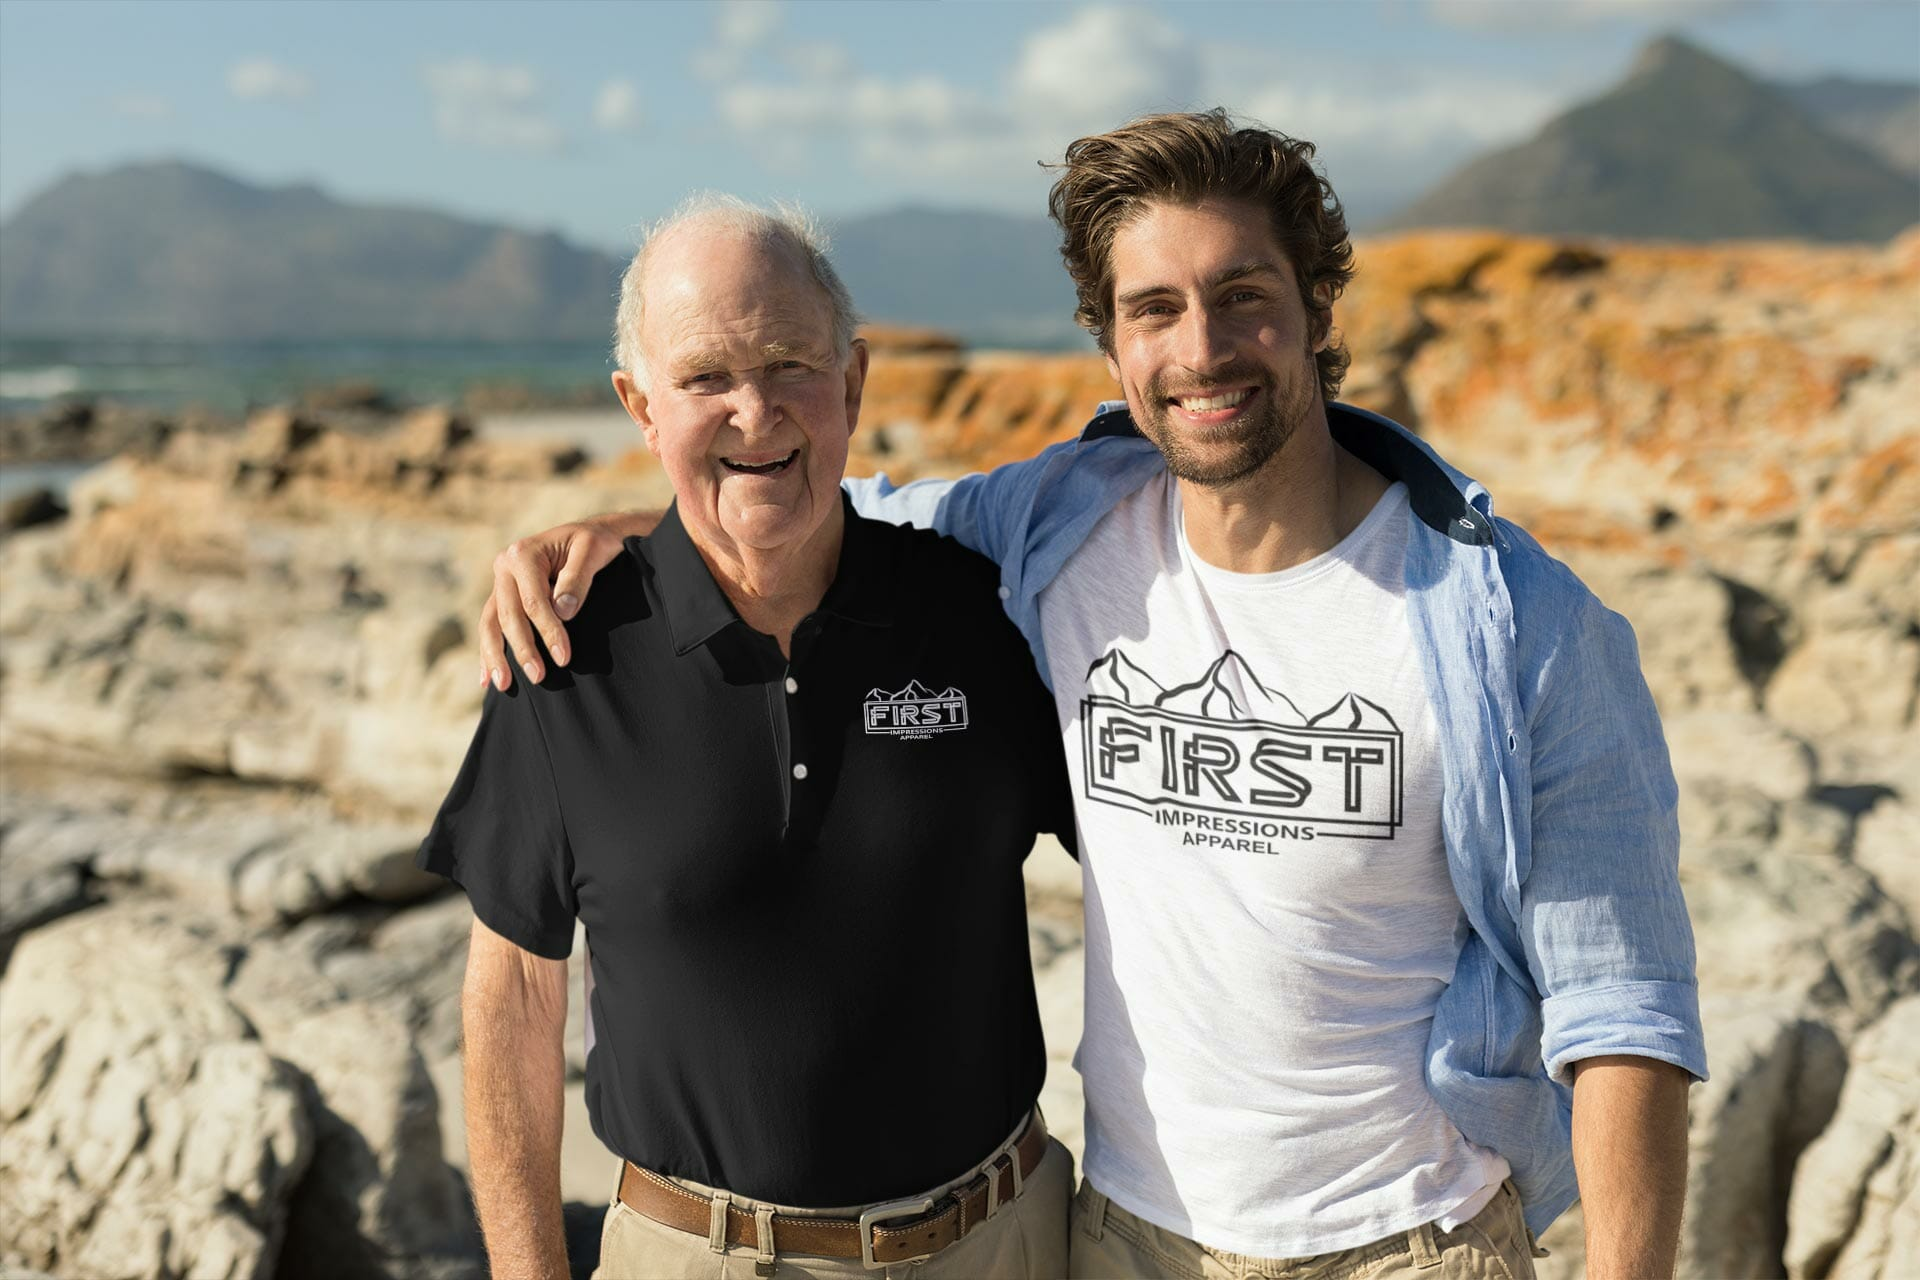 polo-shirt-and-t-shirt-mockup-of-father-and-son-at-the-beach-44258-r-el2